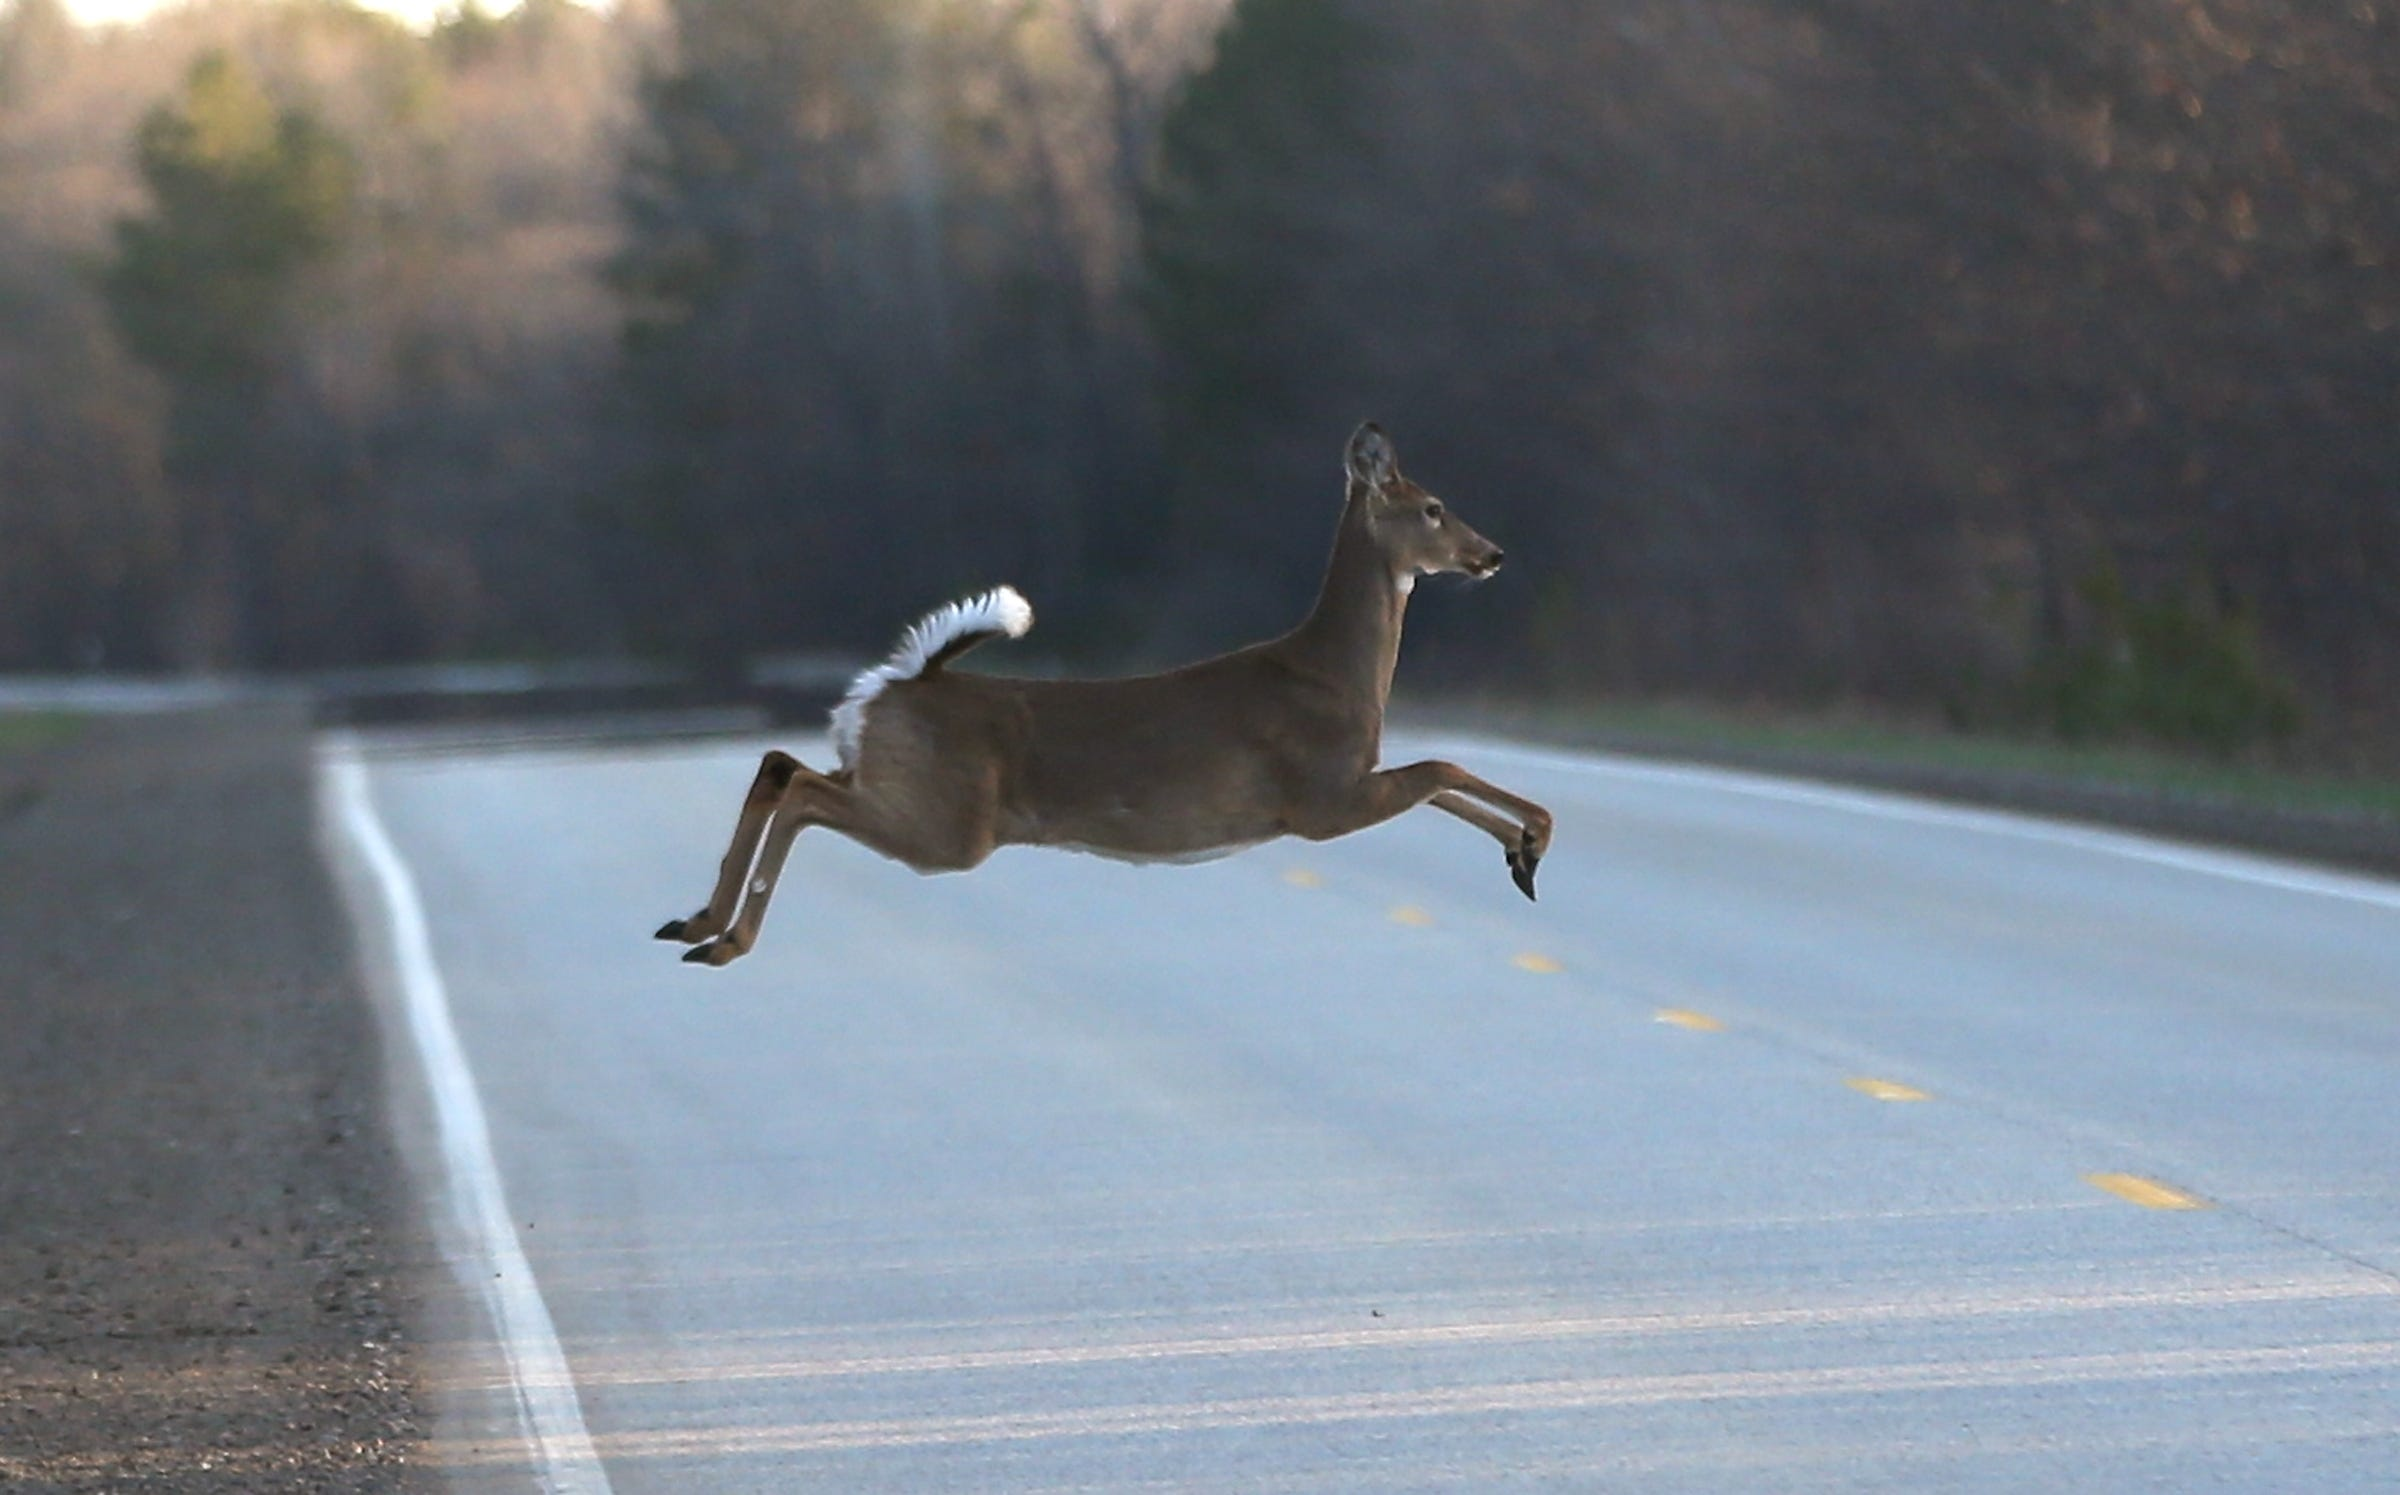 Wolves scare deer and reduce auto collisions 24%, study says 2